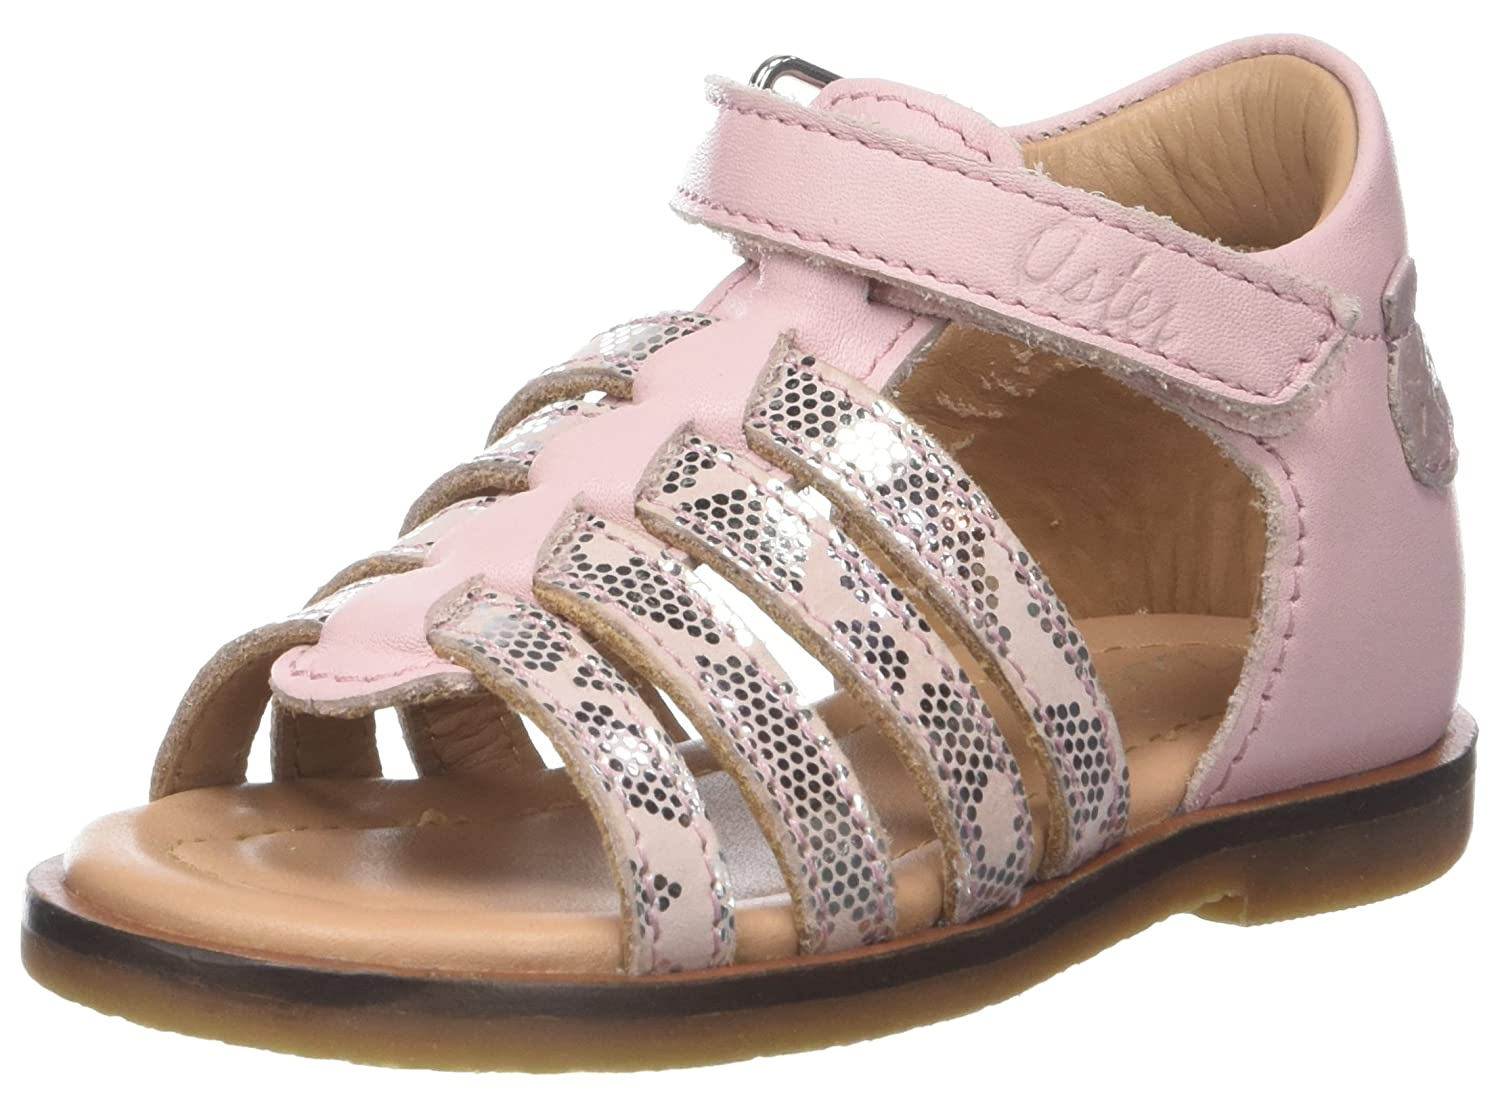 Aster Baby Girls' Nime Sandals 609253-10-13